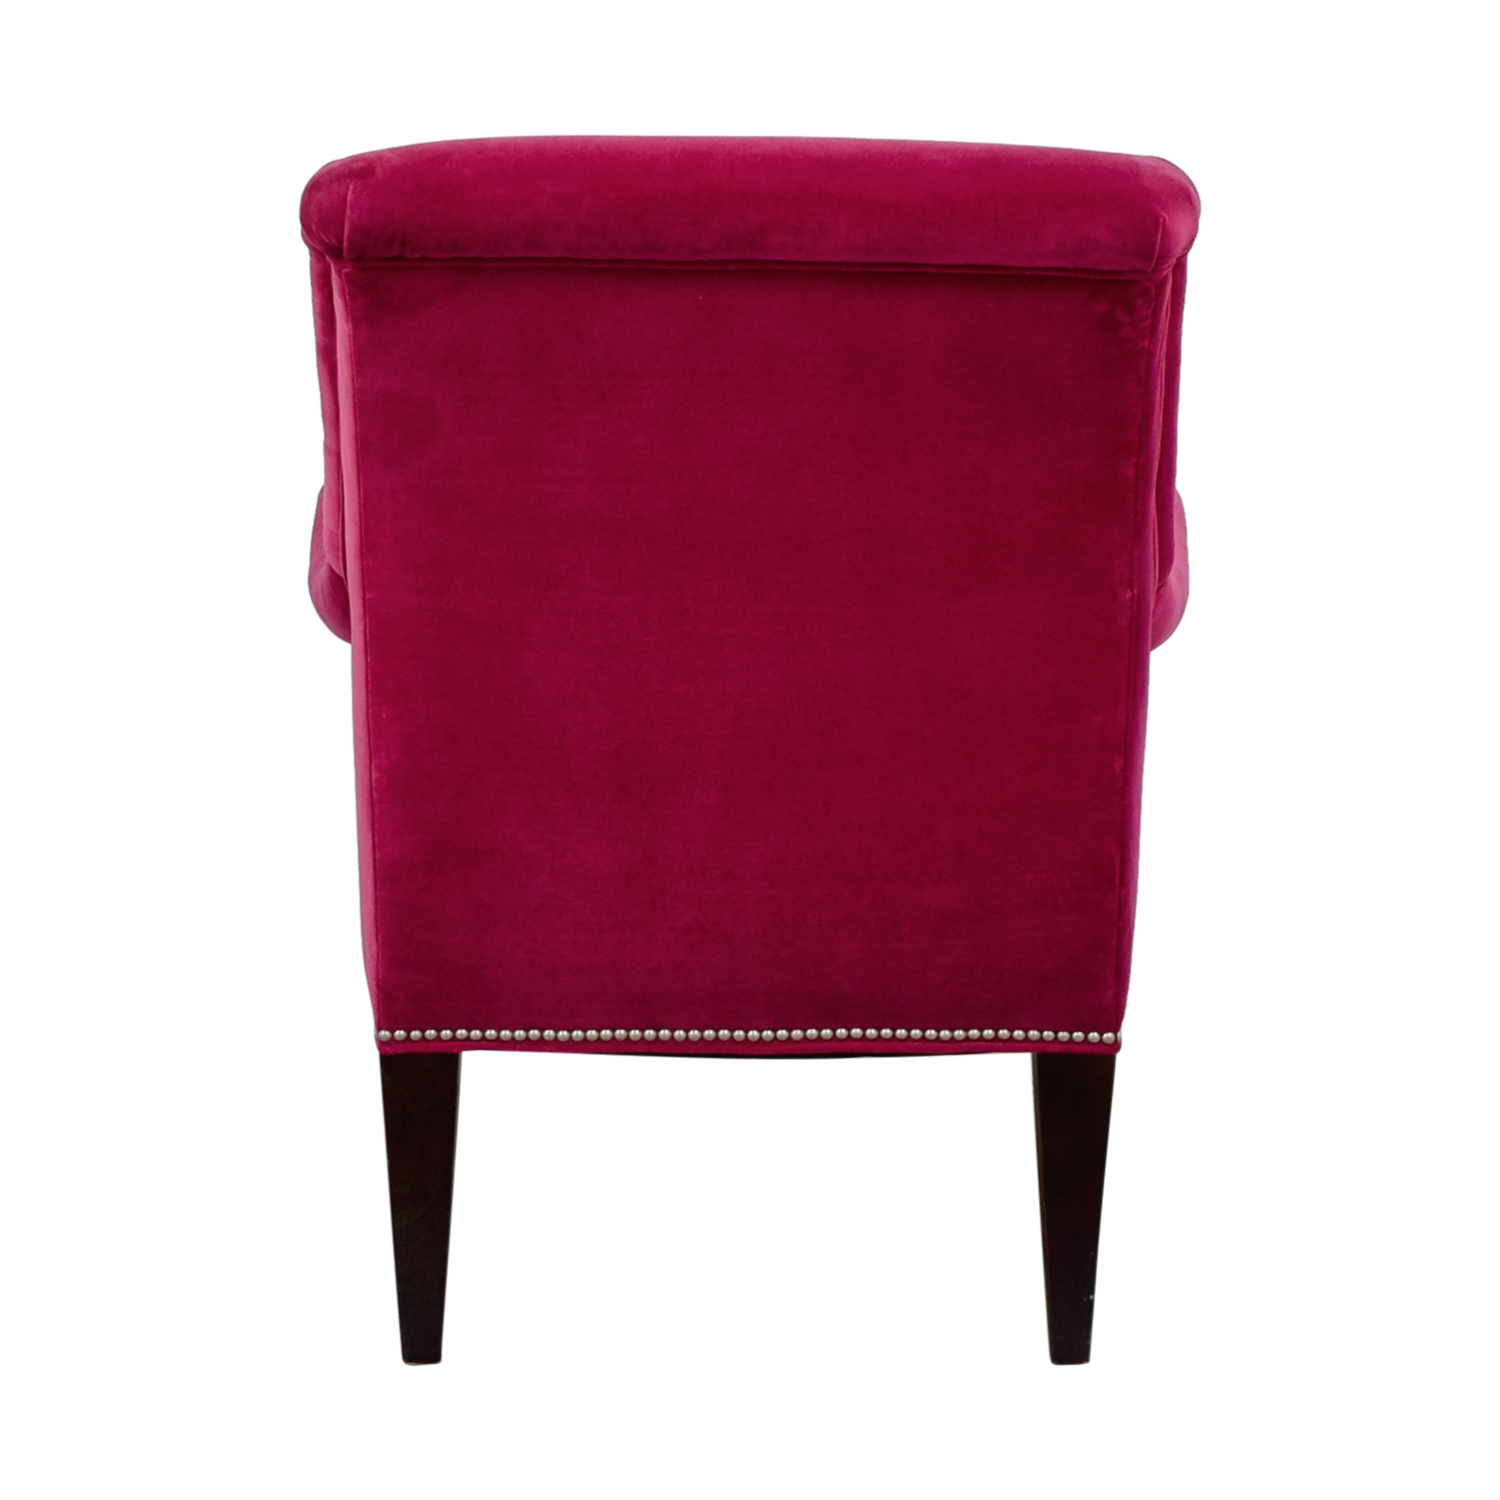 buy Crate & Barrel Pink Velvet Nailhead Accent Chair Crate & Barrel Sofas